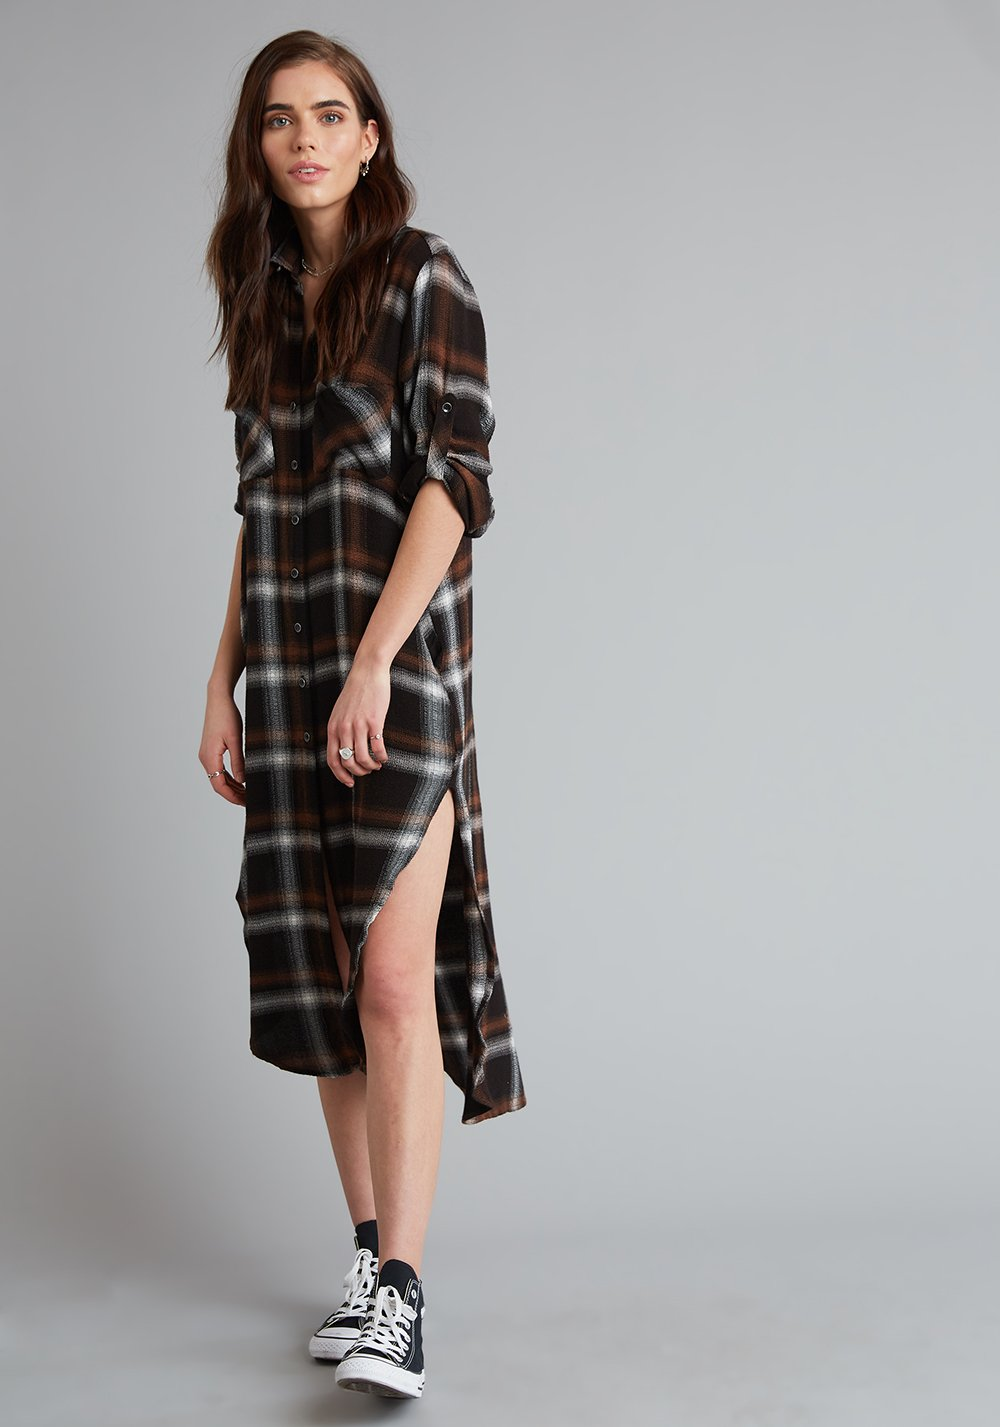 Cinnamon Spice Duster Dress